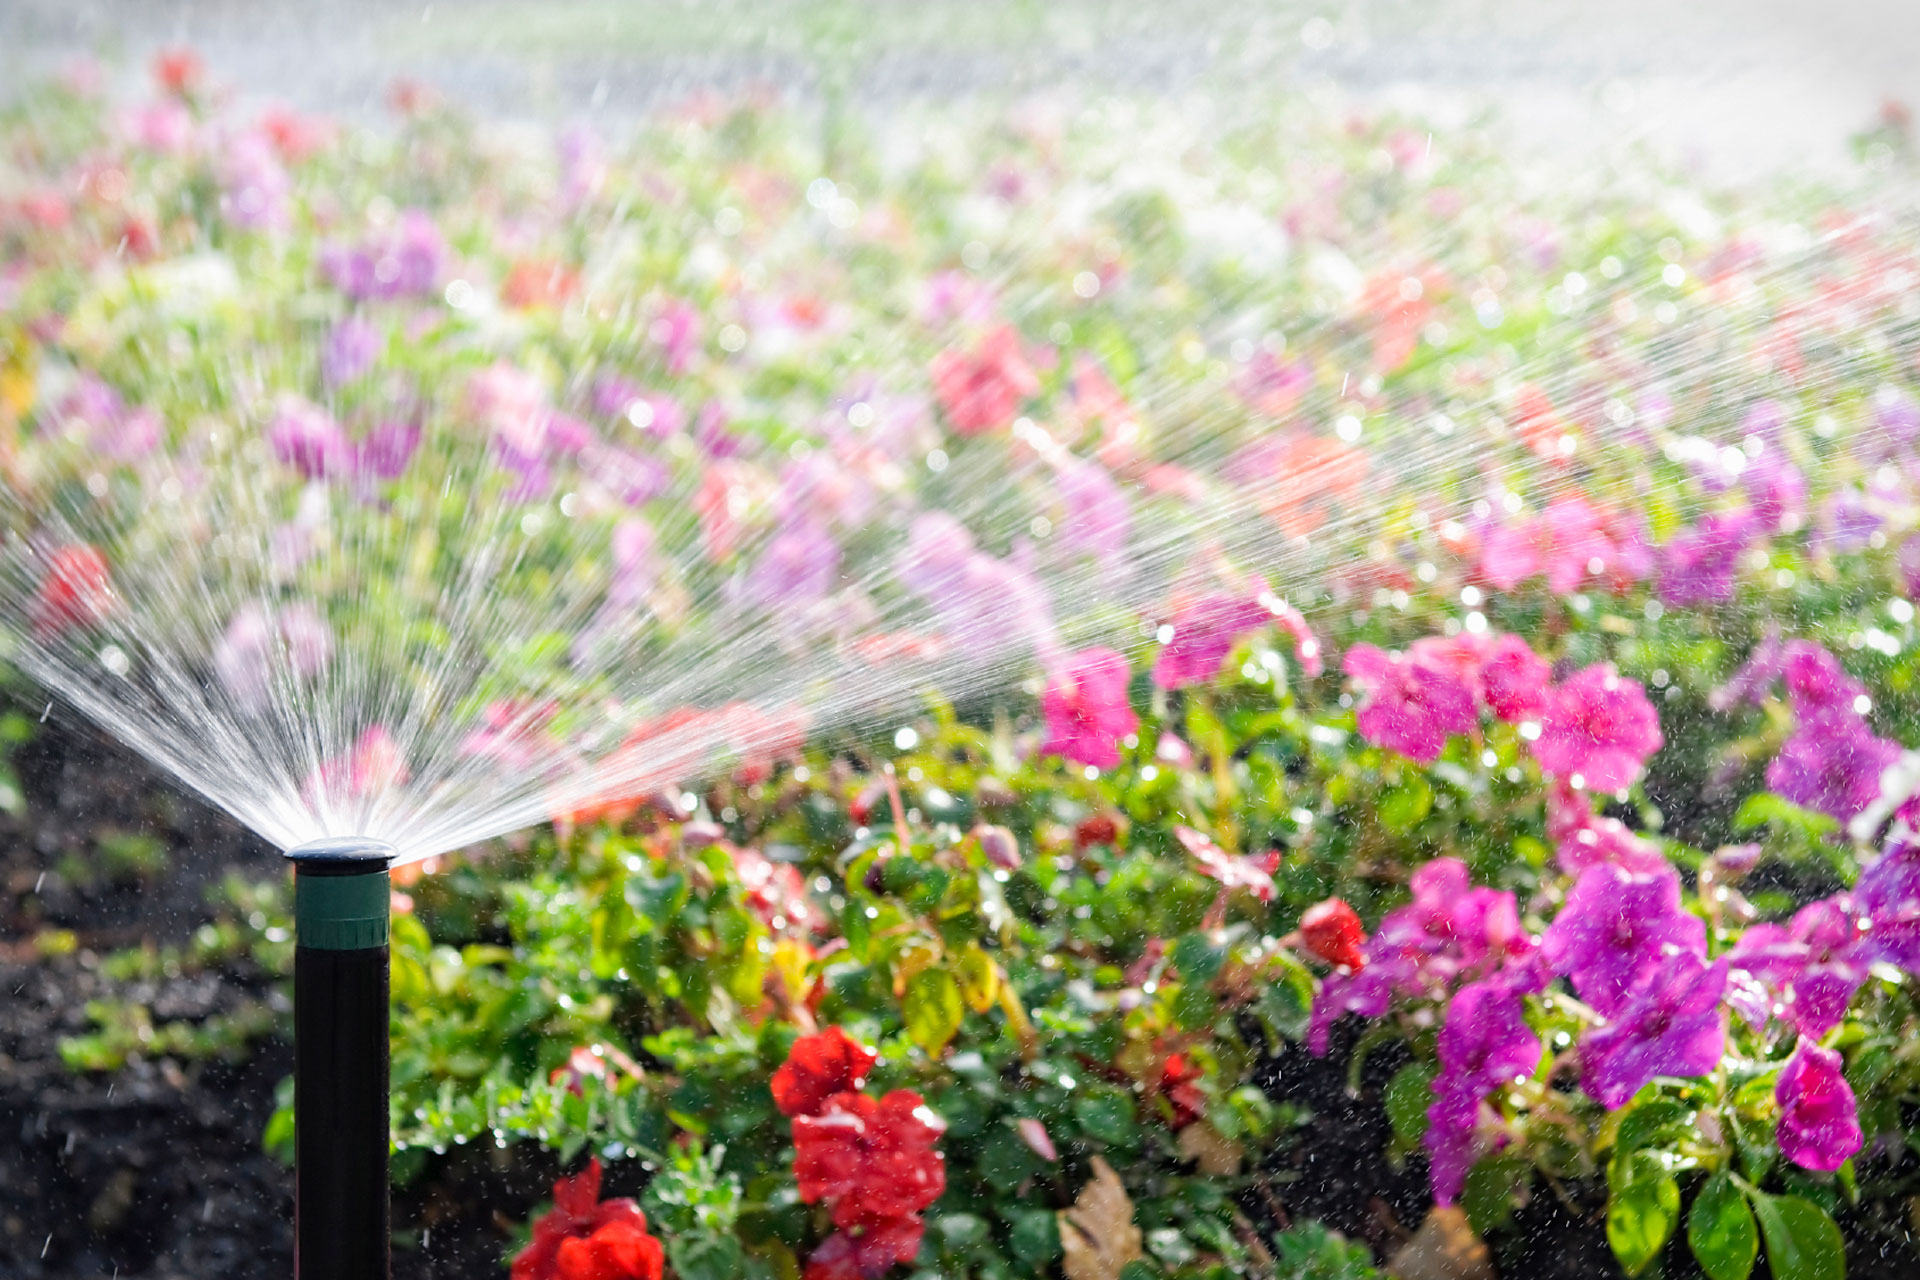 Sprinkler System Check Up Irrigation Systems Lawn